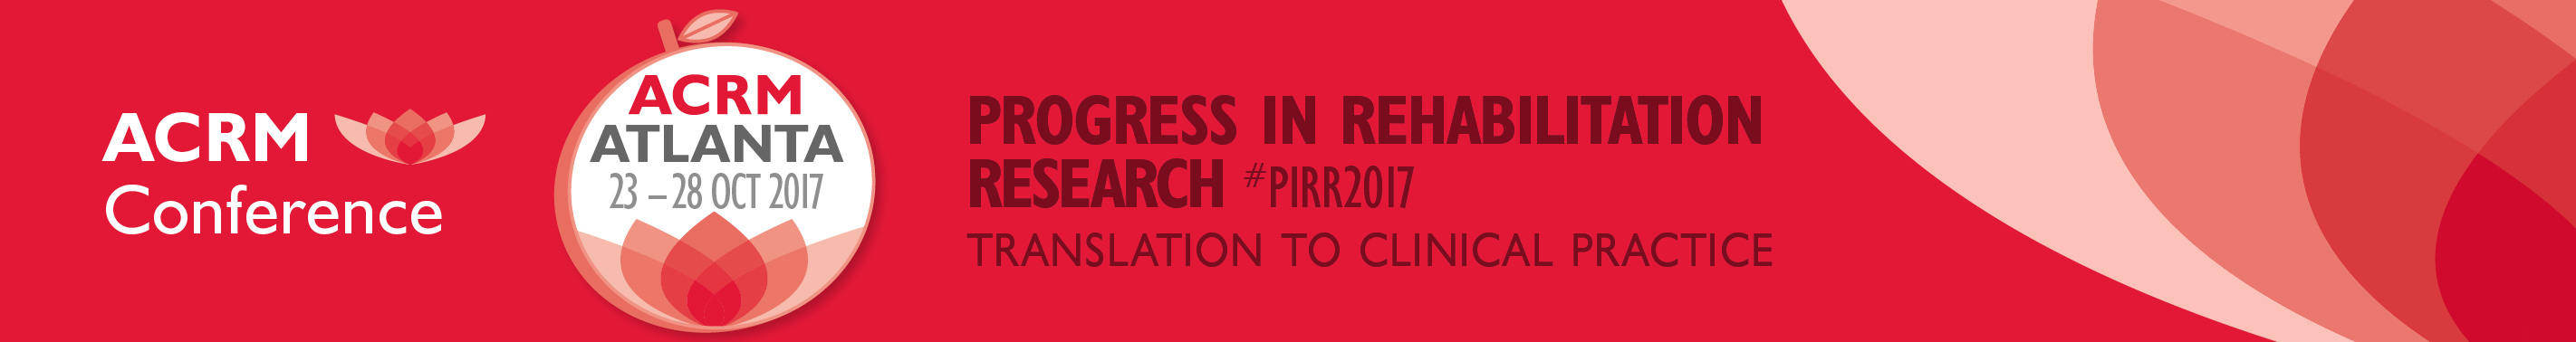 ACRM 94th Annual Conference Progress in Rehabilitation Research PIRR